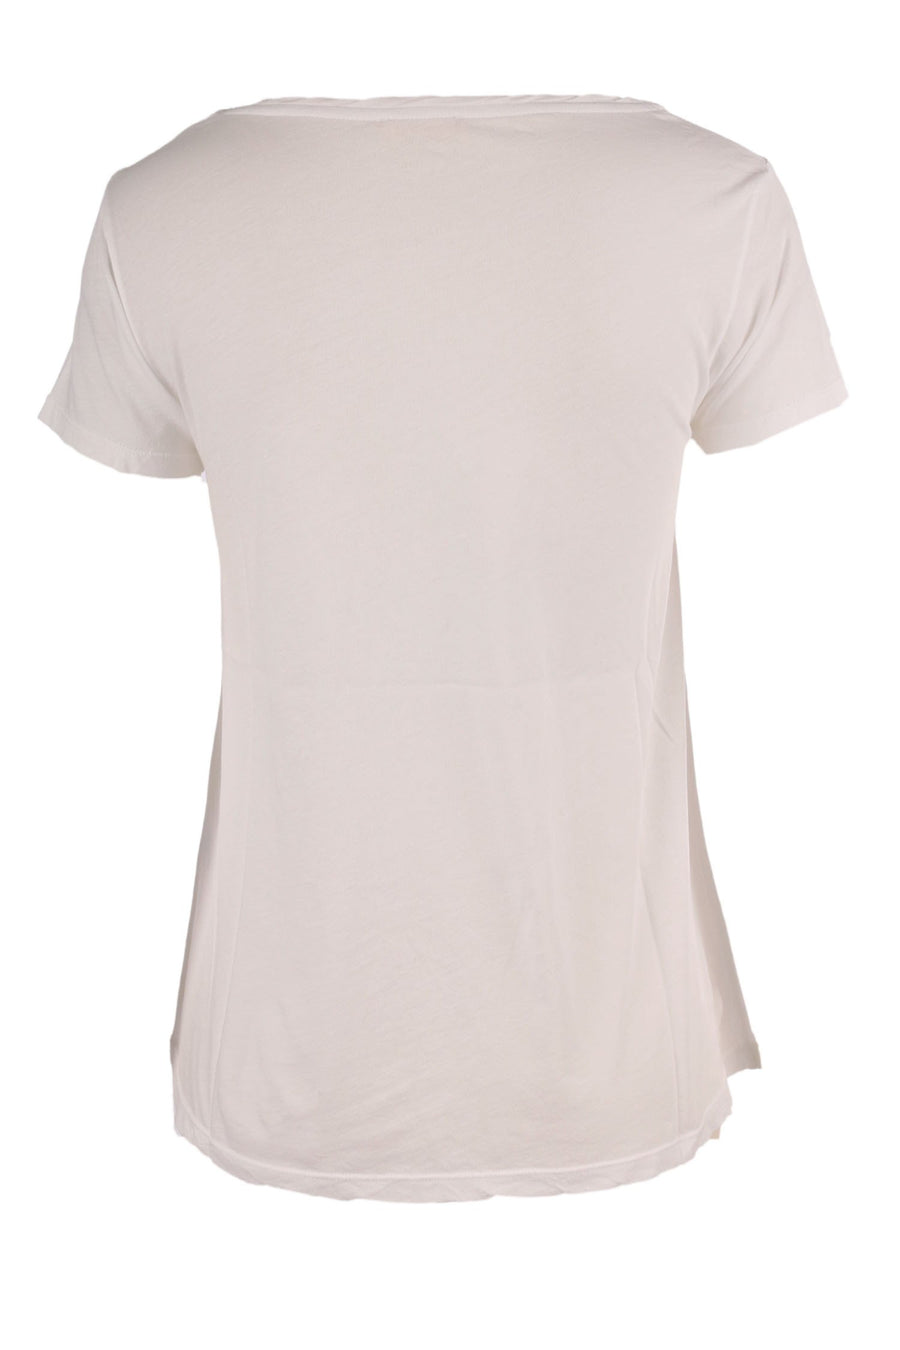 Tinibay Short Sleeve Tee in White